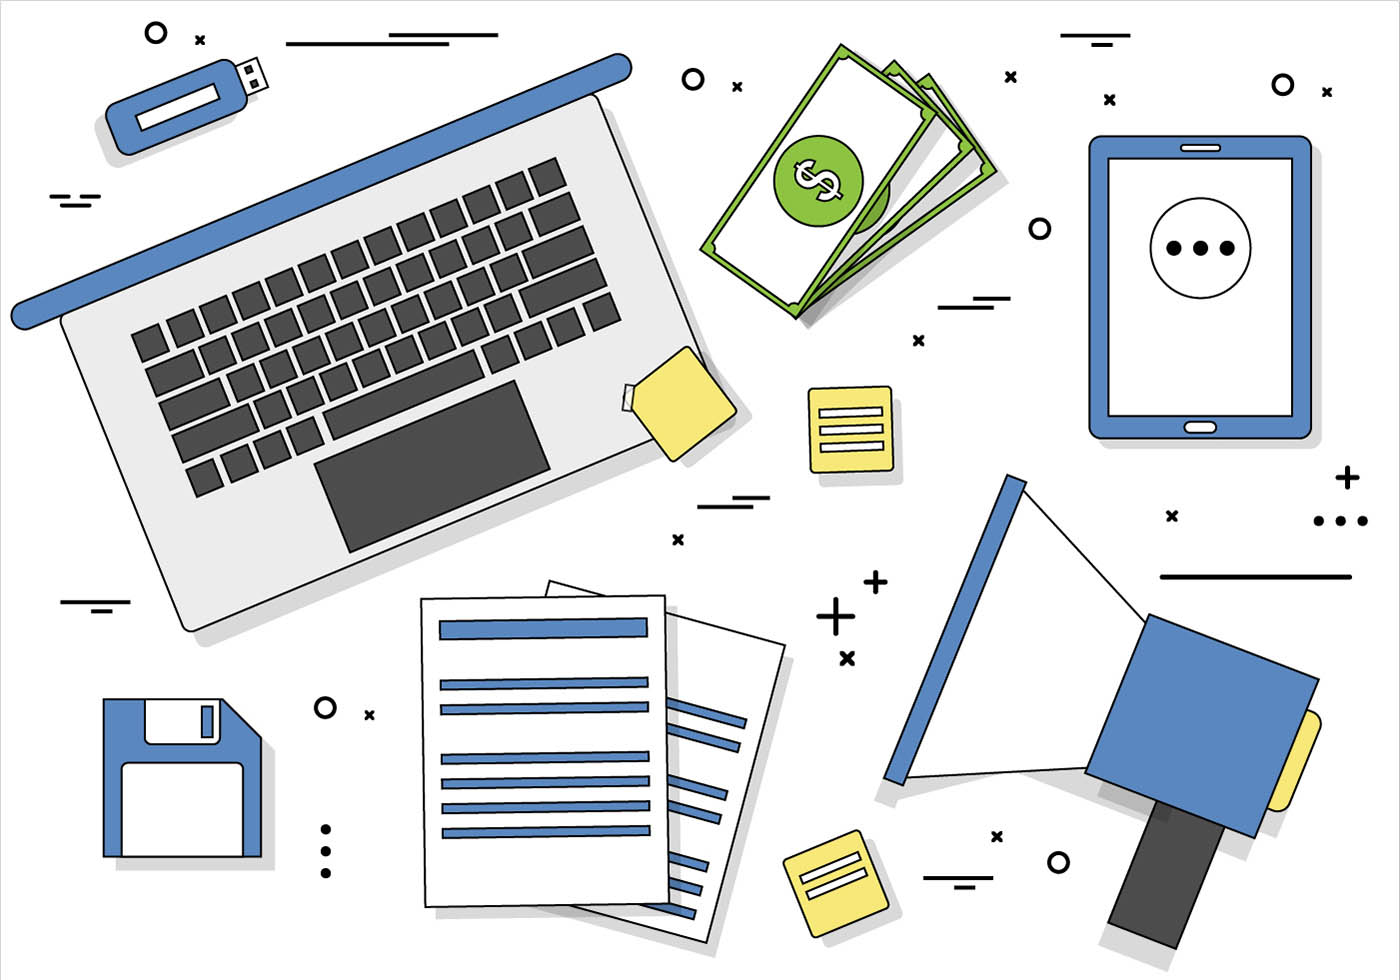 Technology Management Image: Free Flat Design Vector Digital Office Icons